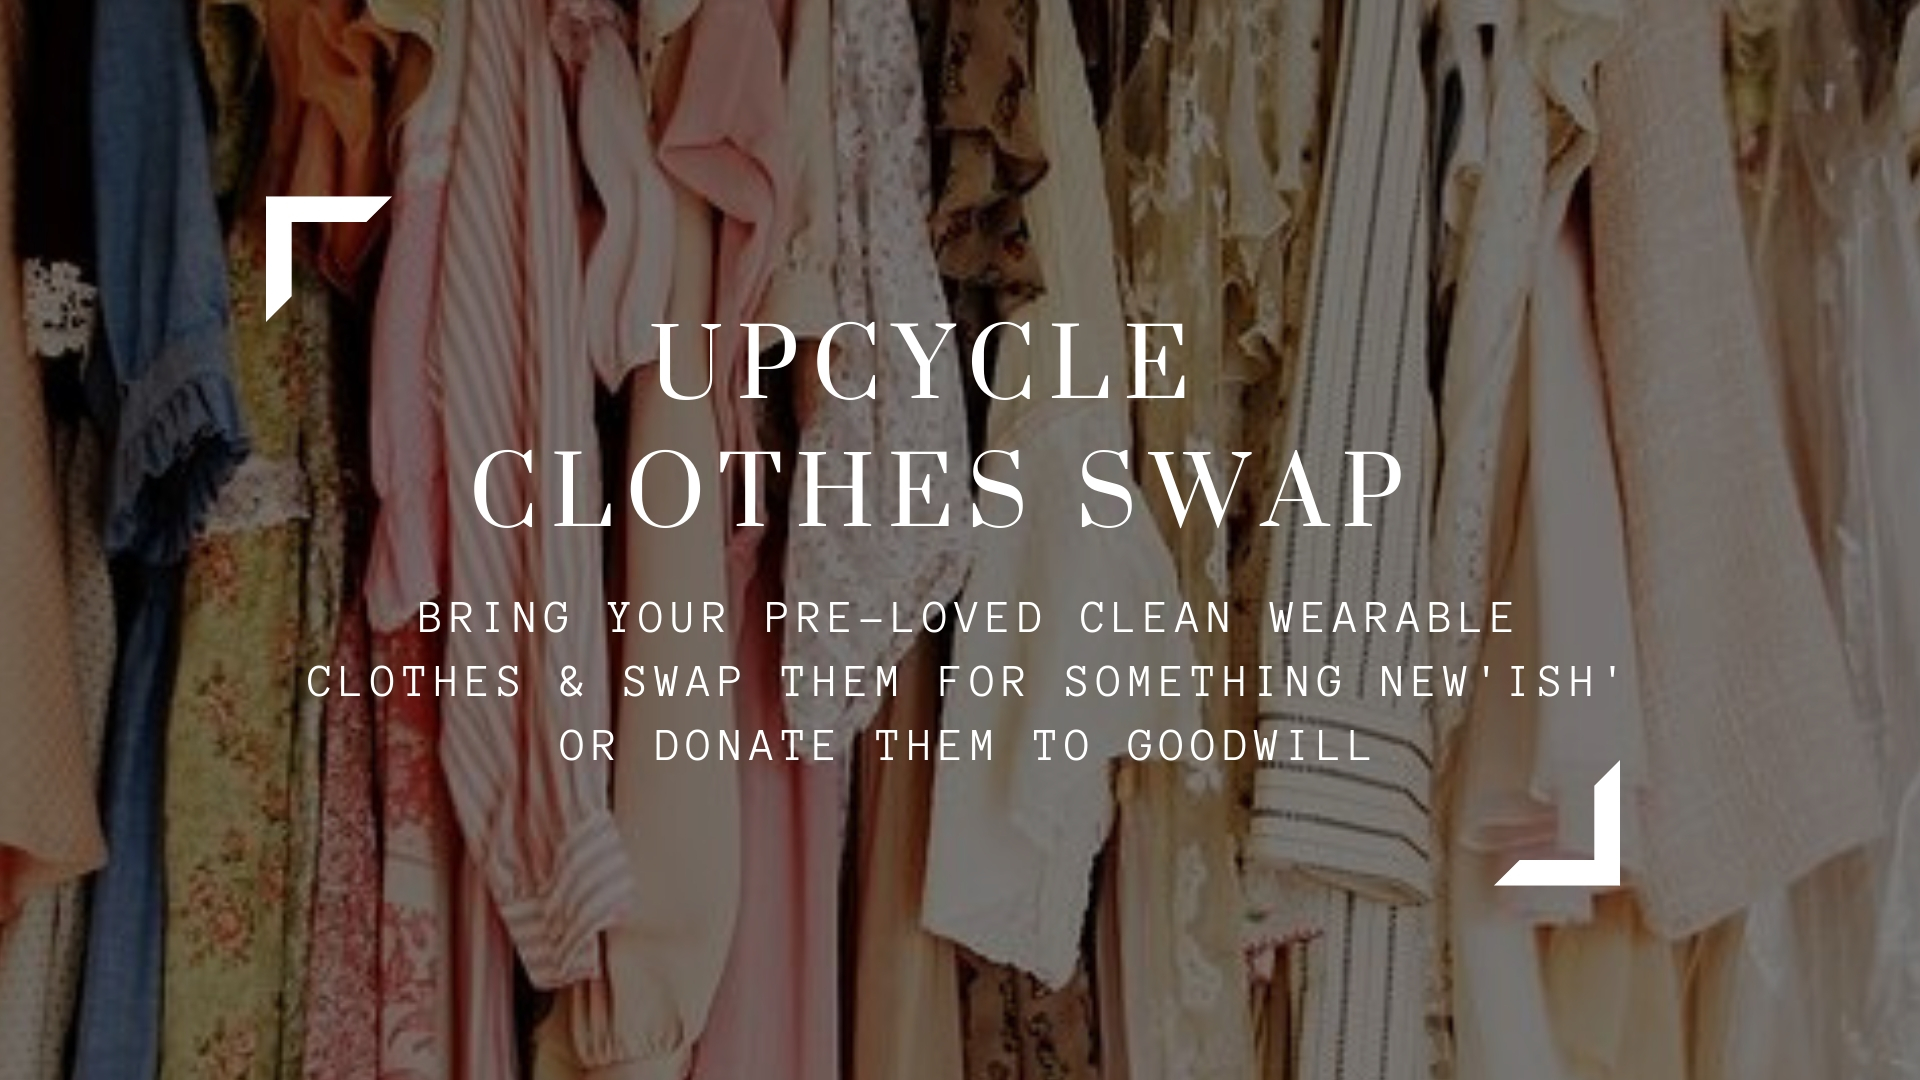 UPCYCLE CLOTHES SWAP.jpg